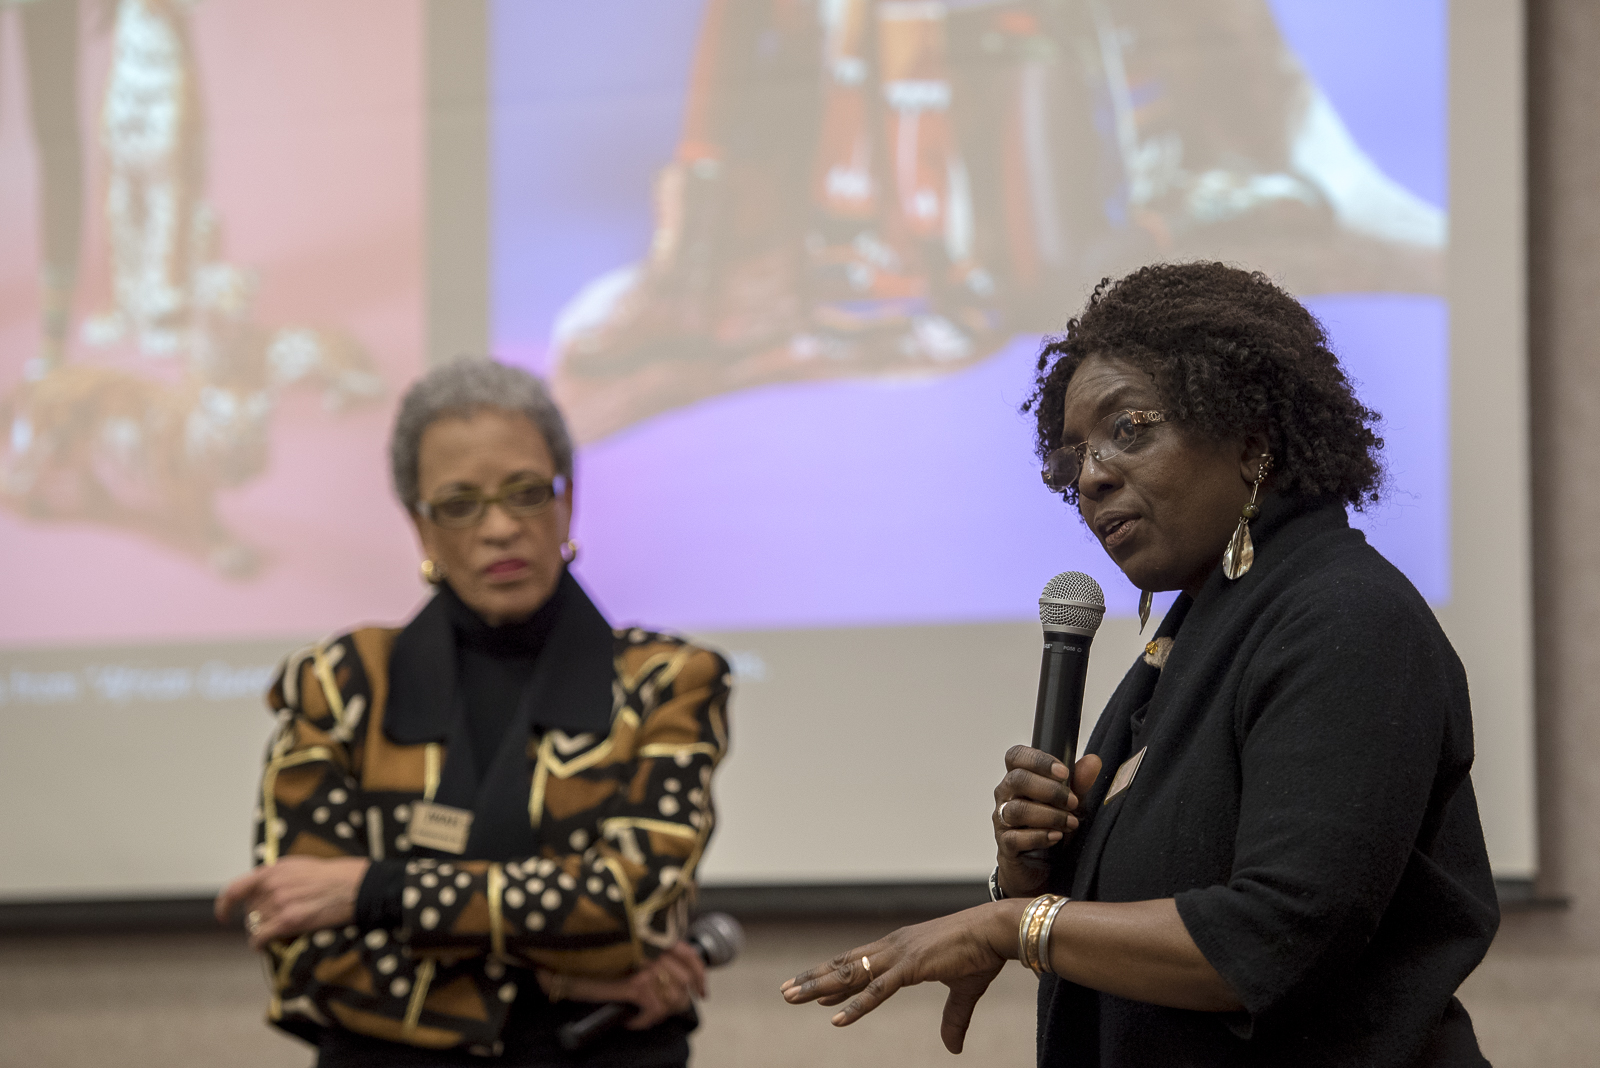 Two african american women speaking at a conference.